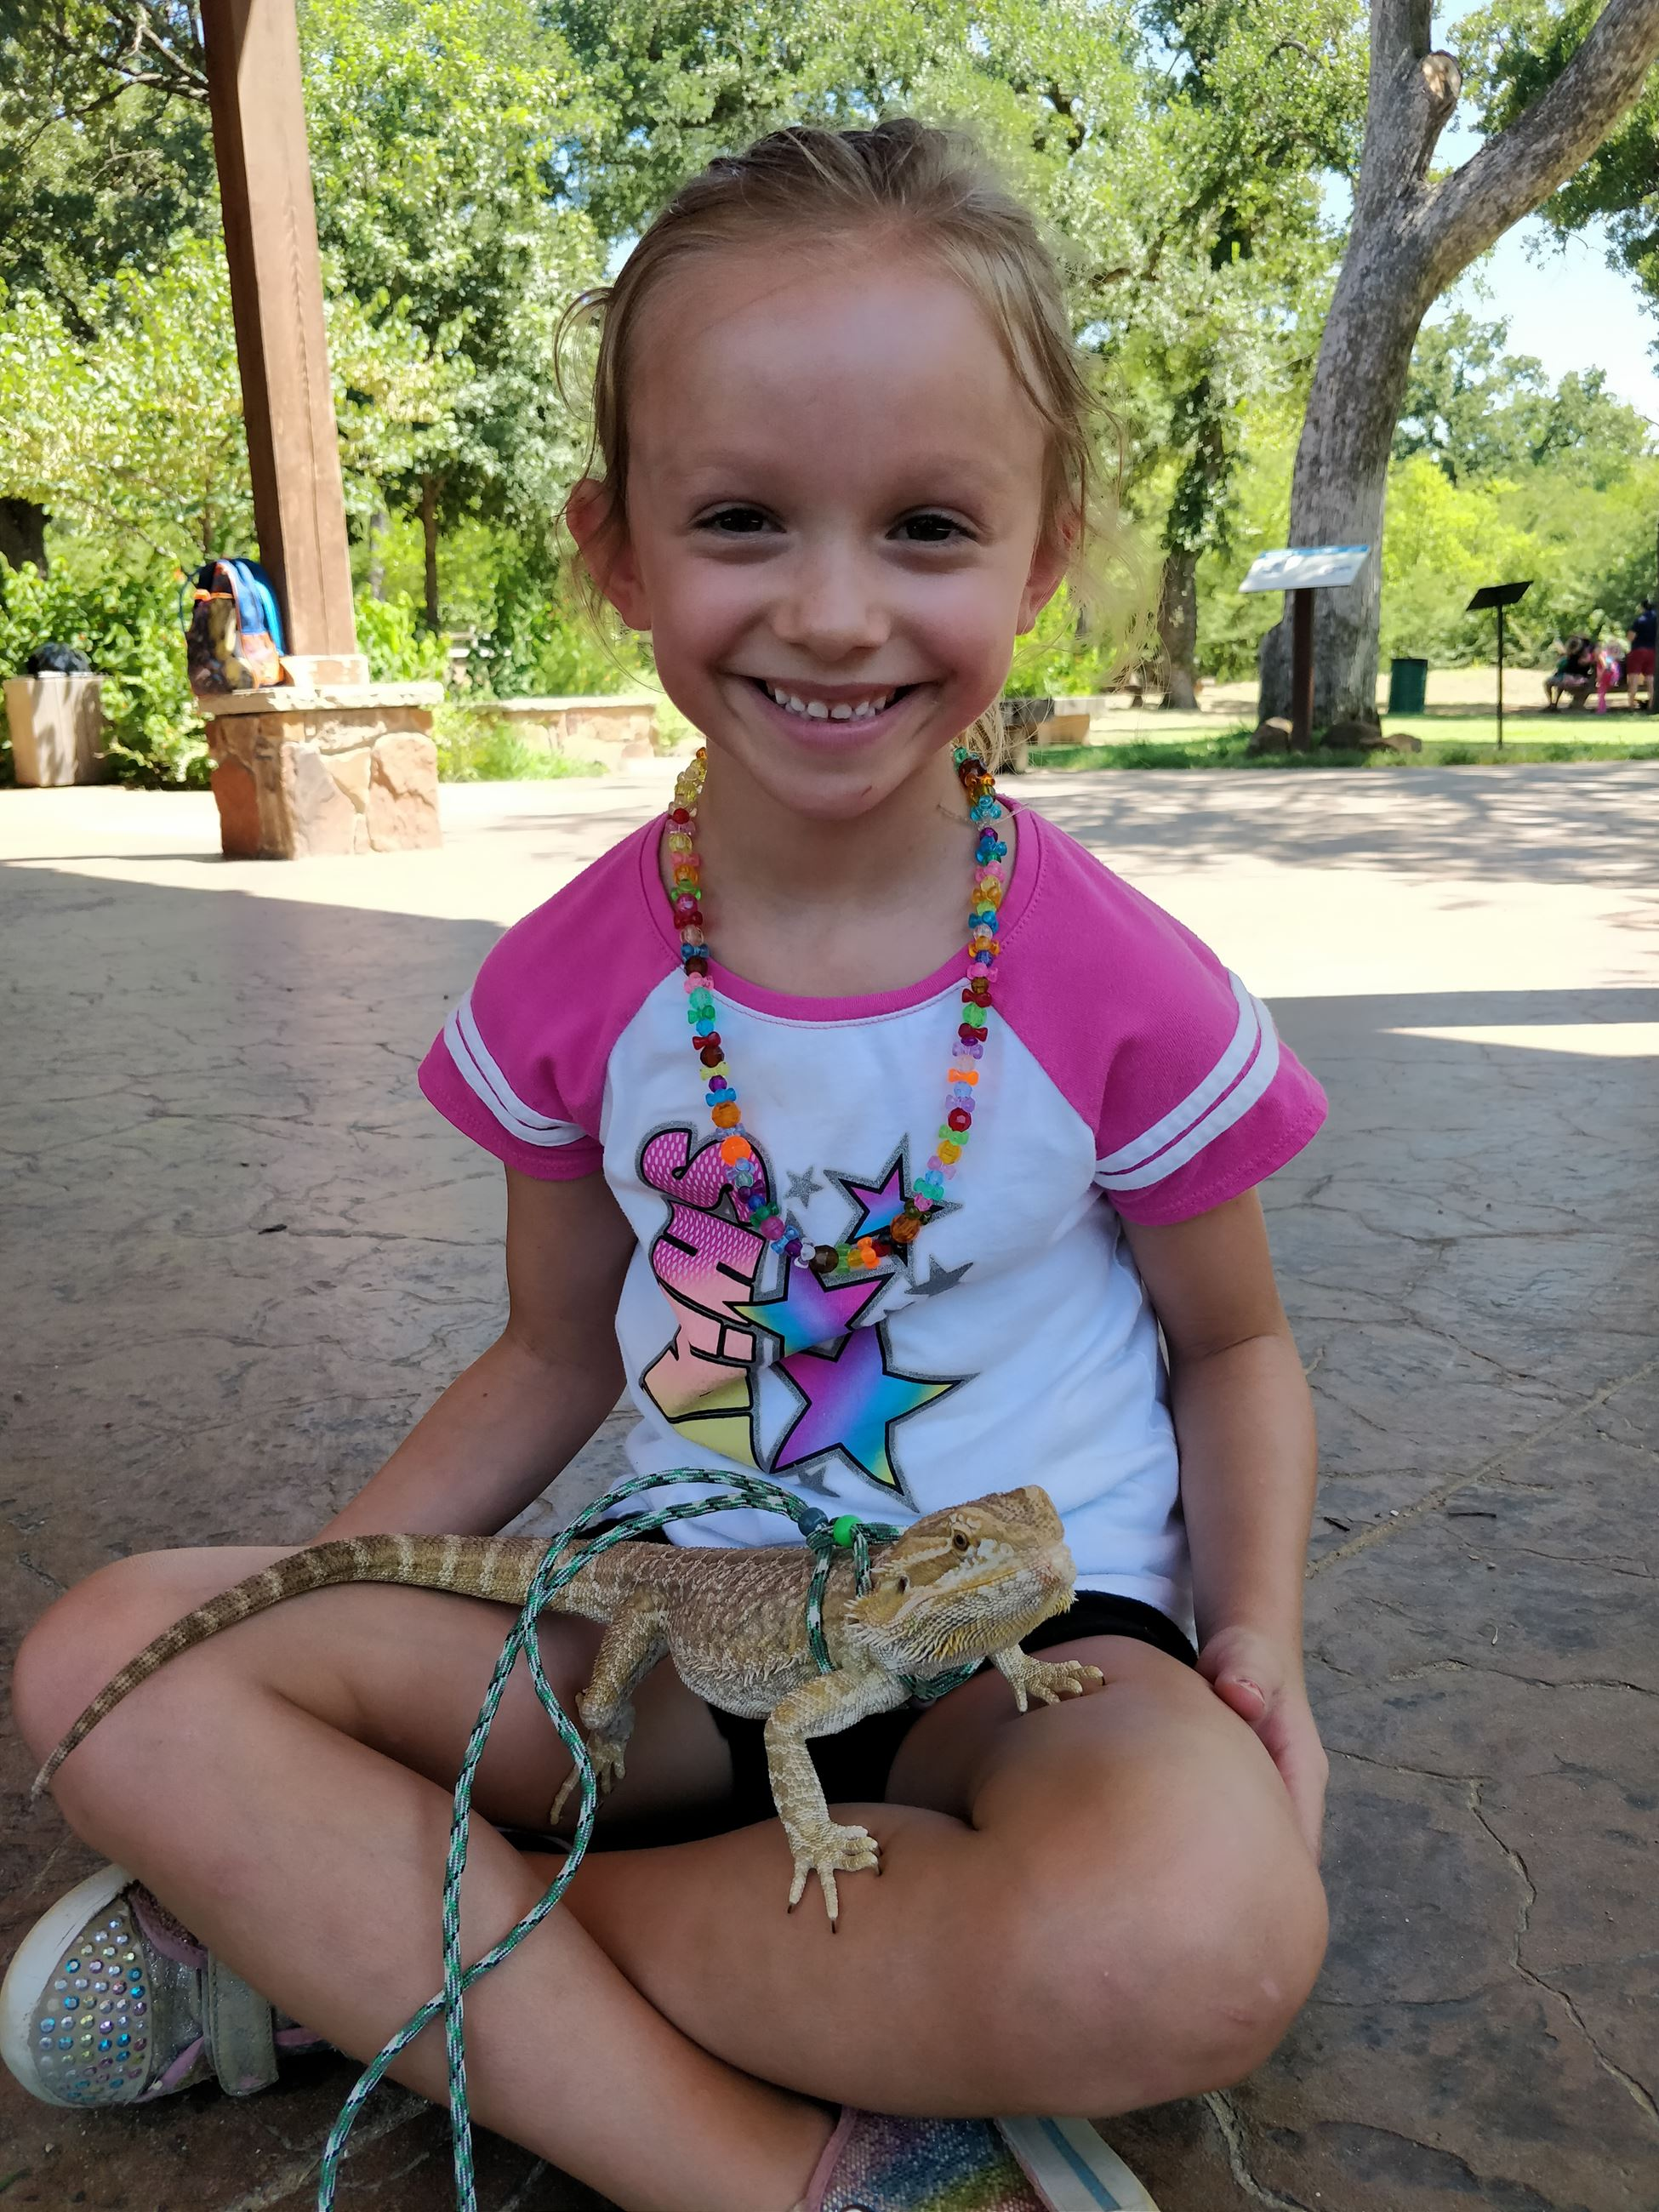 Girl smiling holding bearded dragon